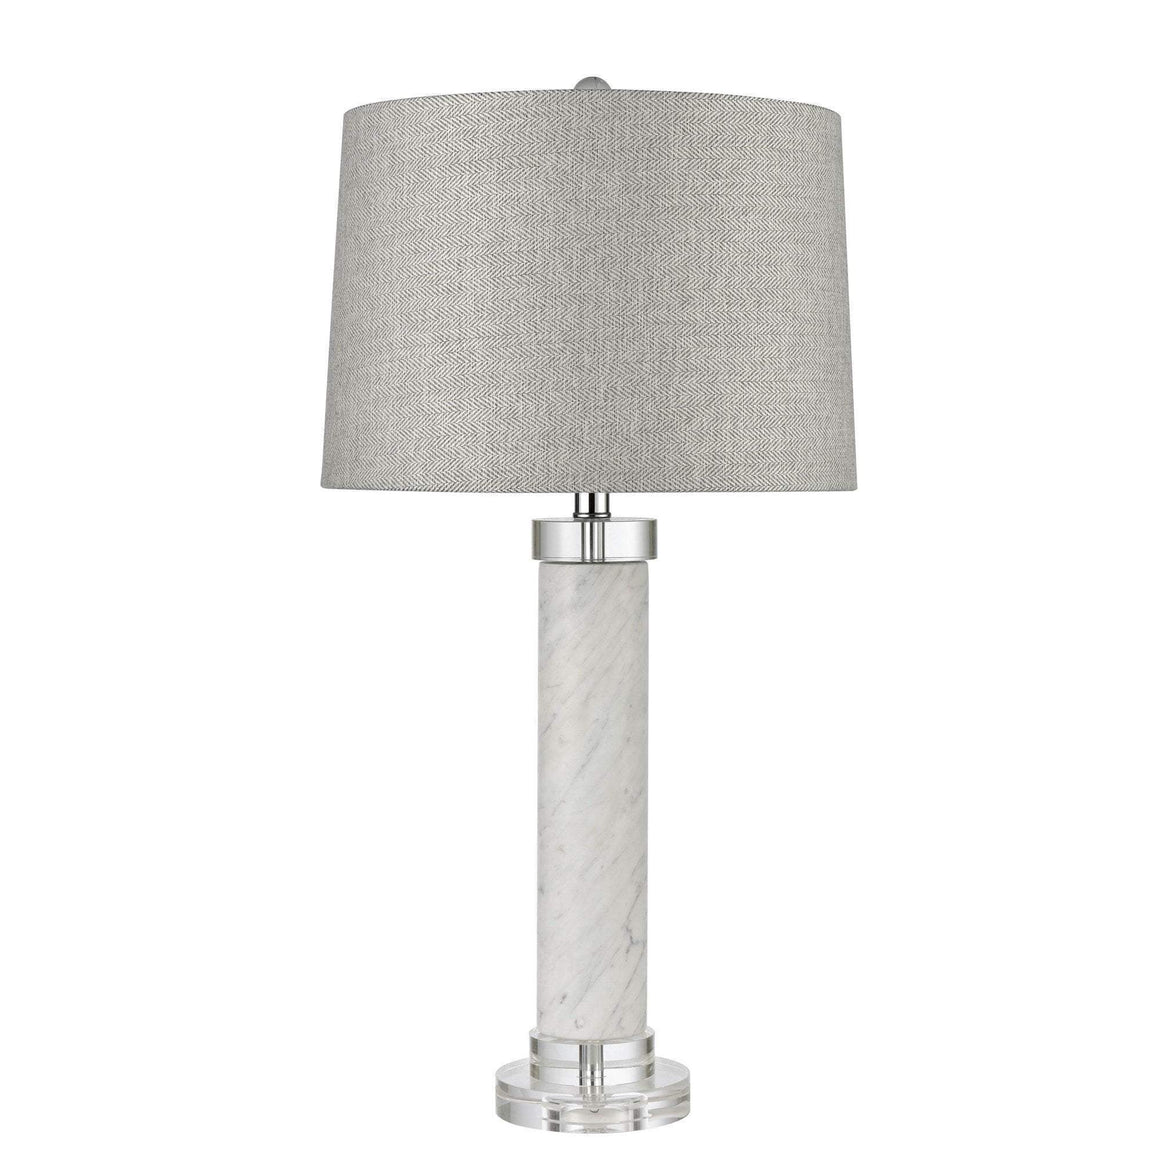 ITALY WHITE MARBLE TABLE LAMP W/ SHADE